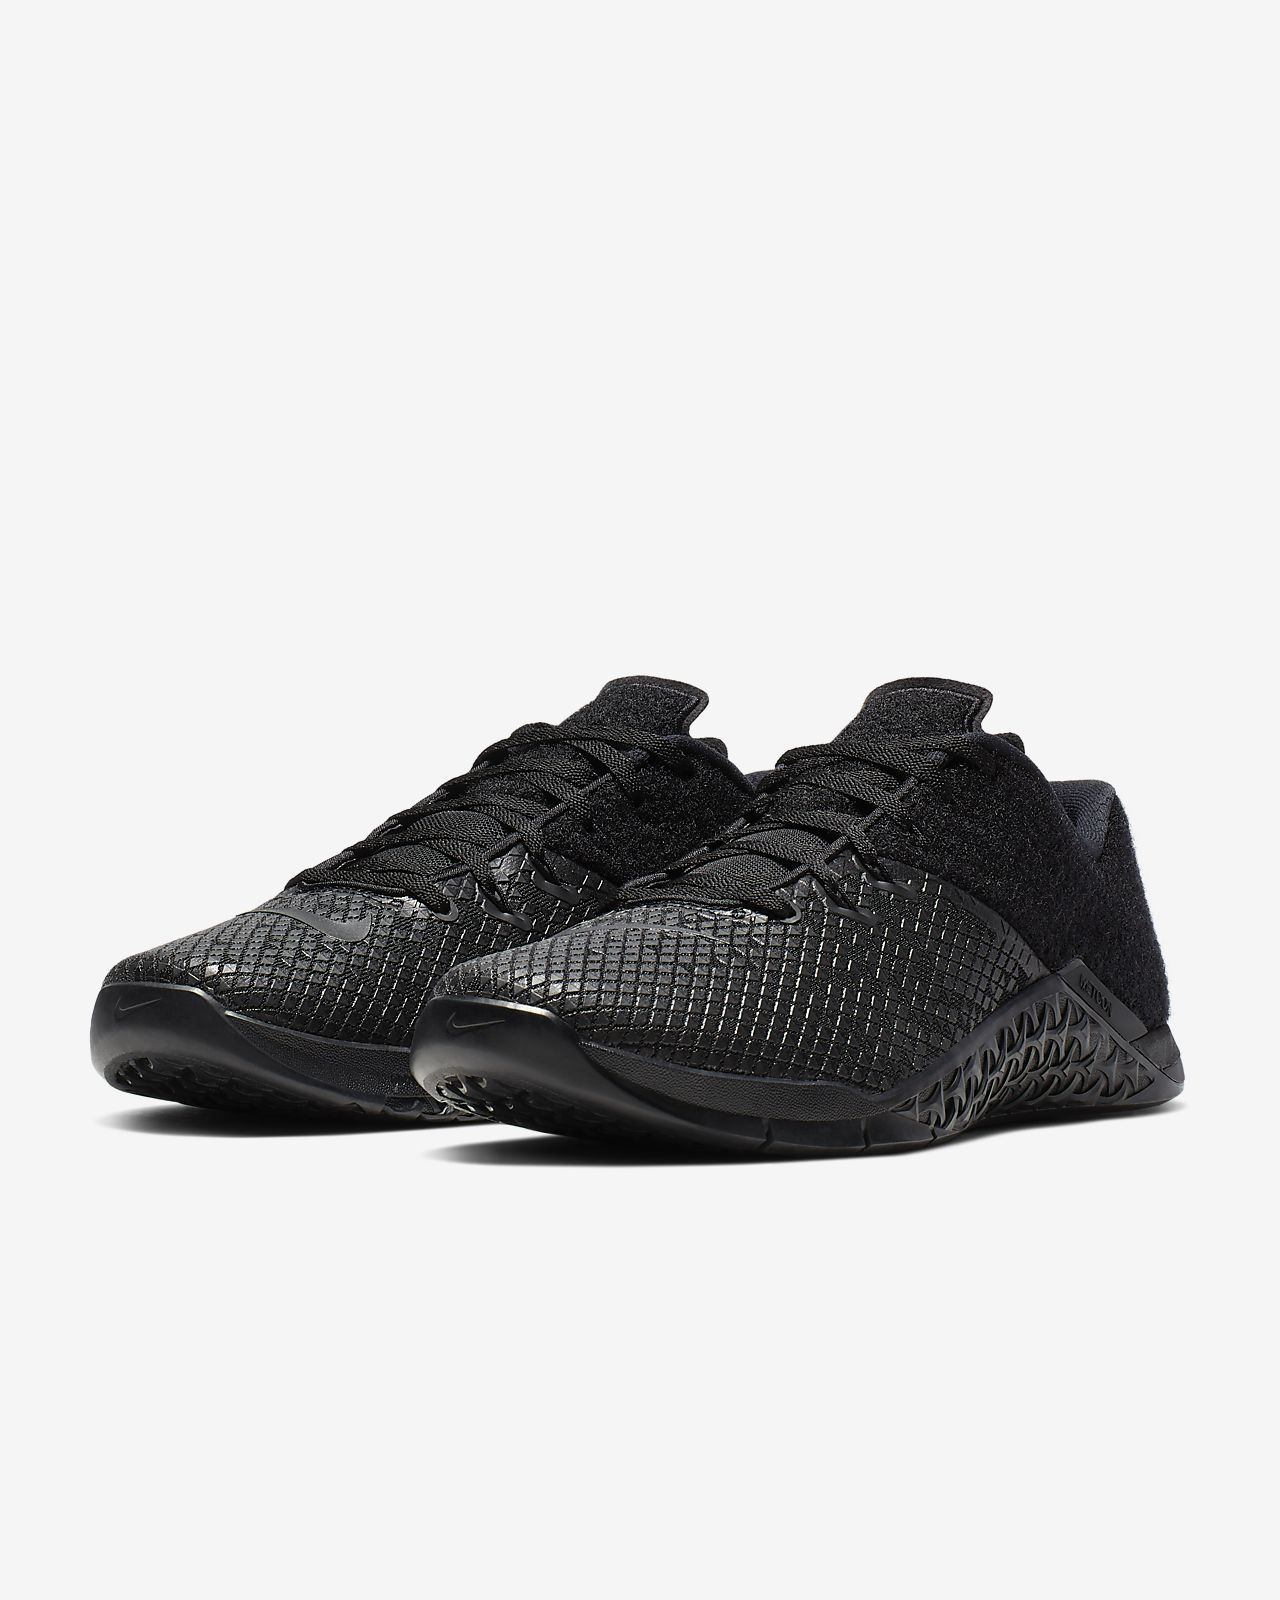 Nike Metcon 4 XD Patch Men's Training Shoe